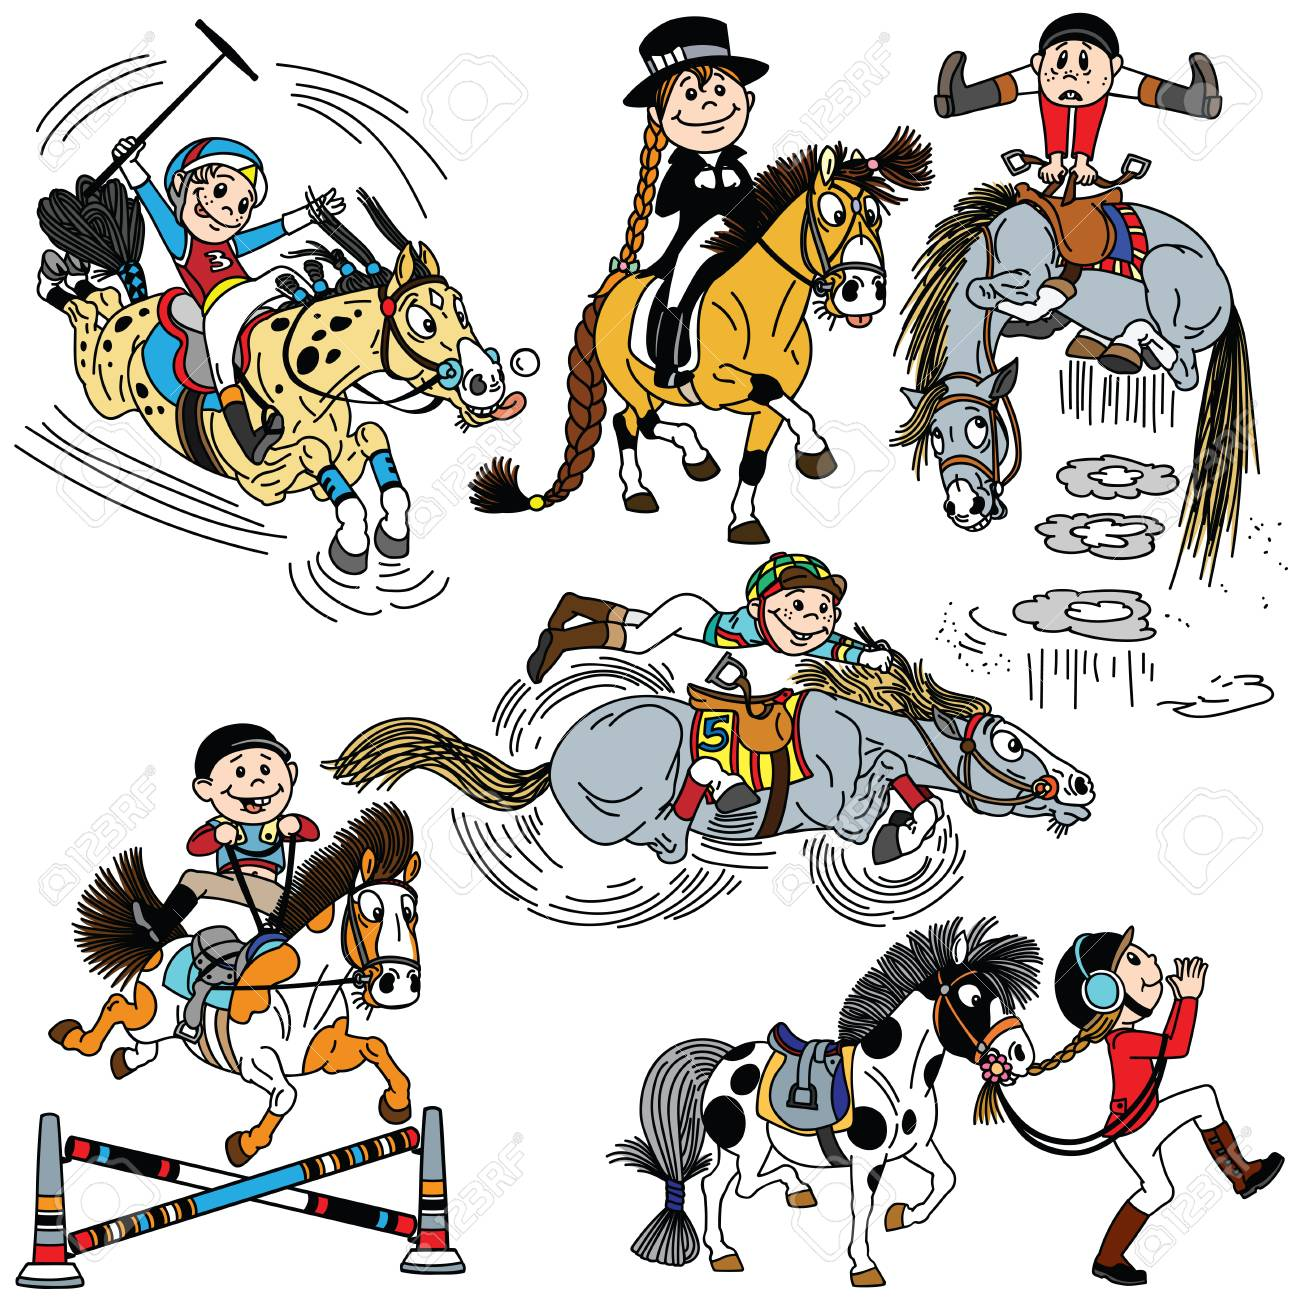 Set Of Cartoon Child Riding A Horse Kid Training His Pony Collection Royalty Free Cliparts Vectors And Stock Illustration Image 119986382